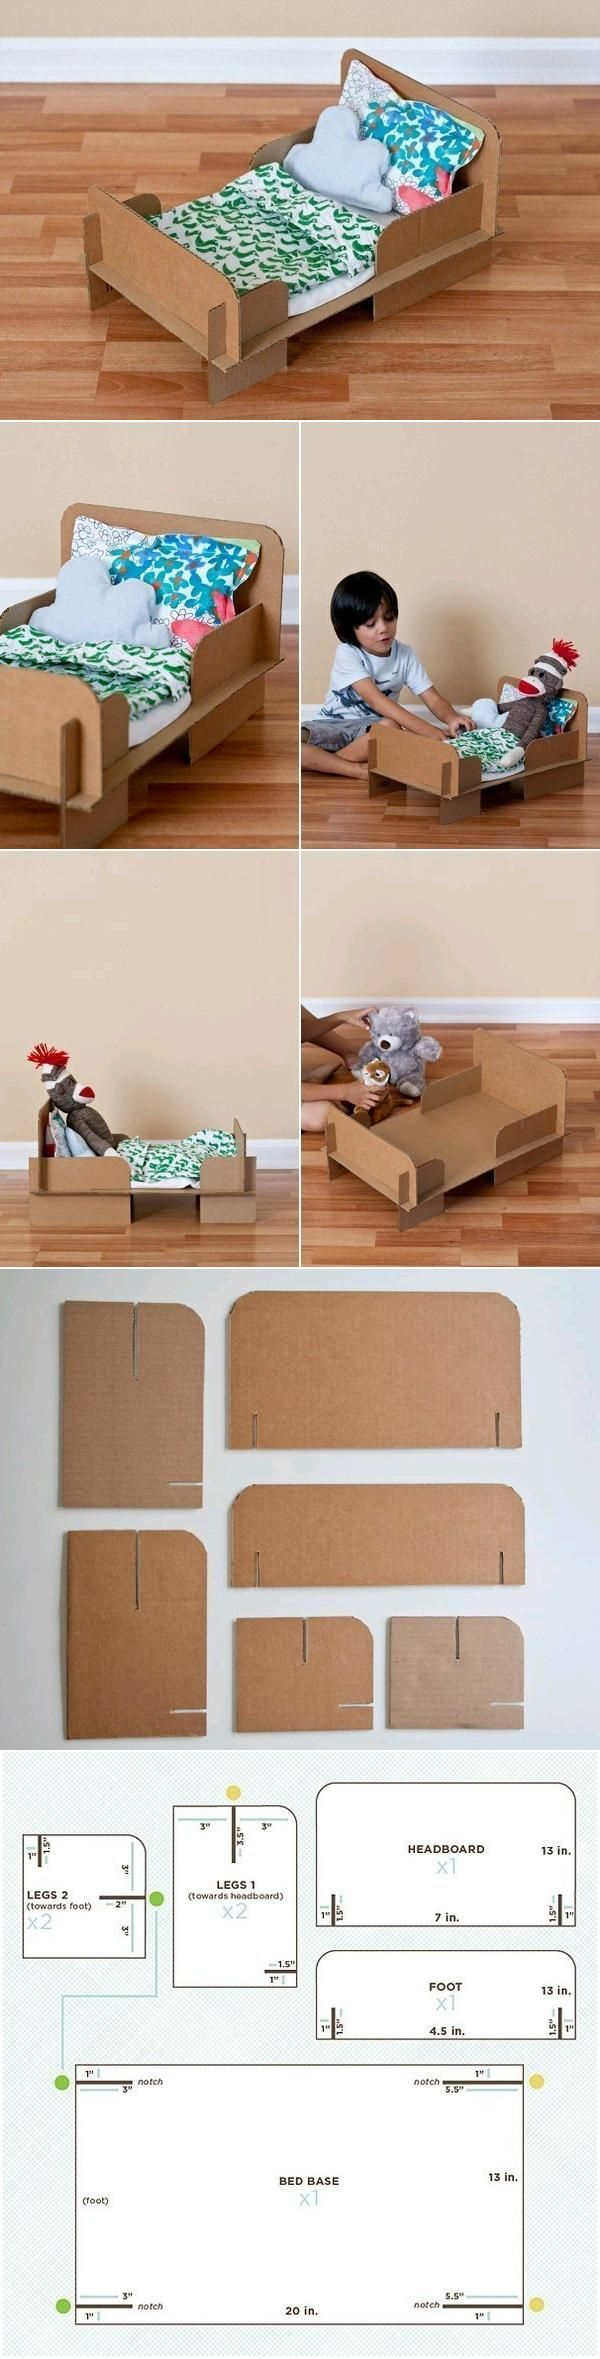 DIY Cardboard Bed. Let Lily paint the pieces before assembly?